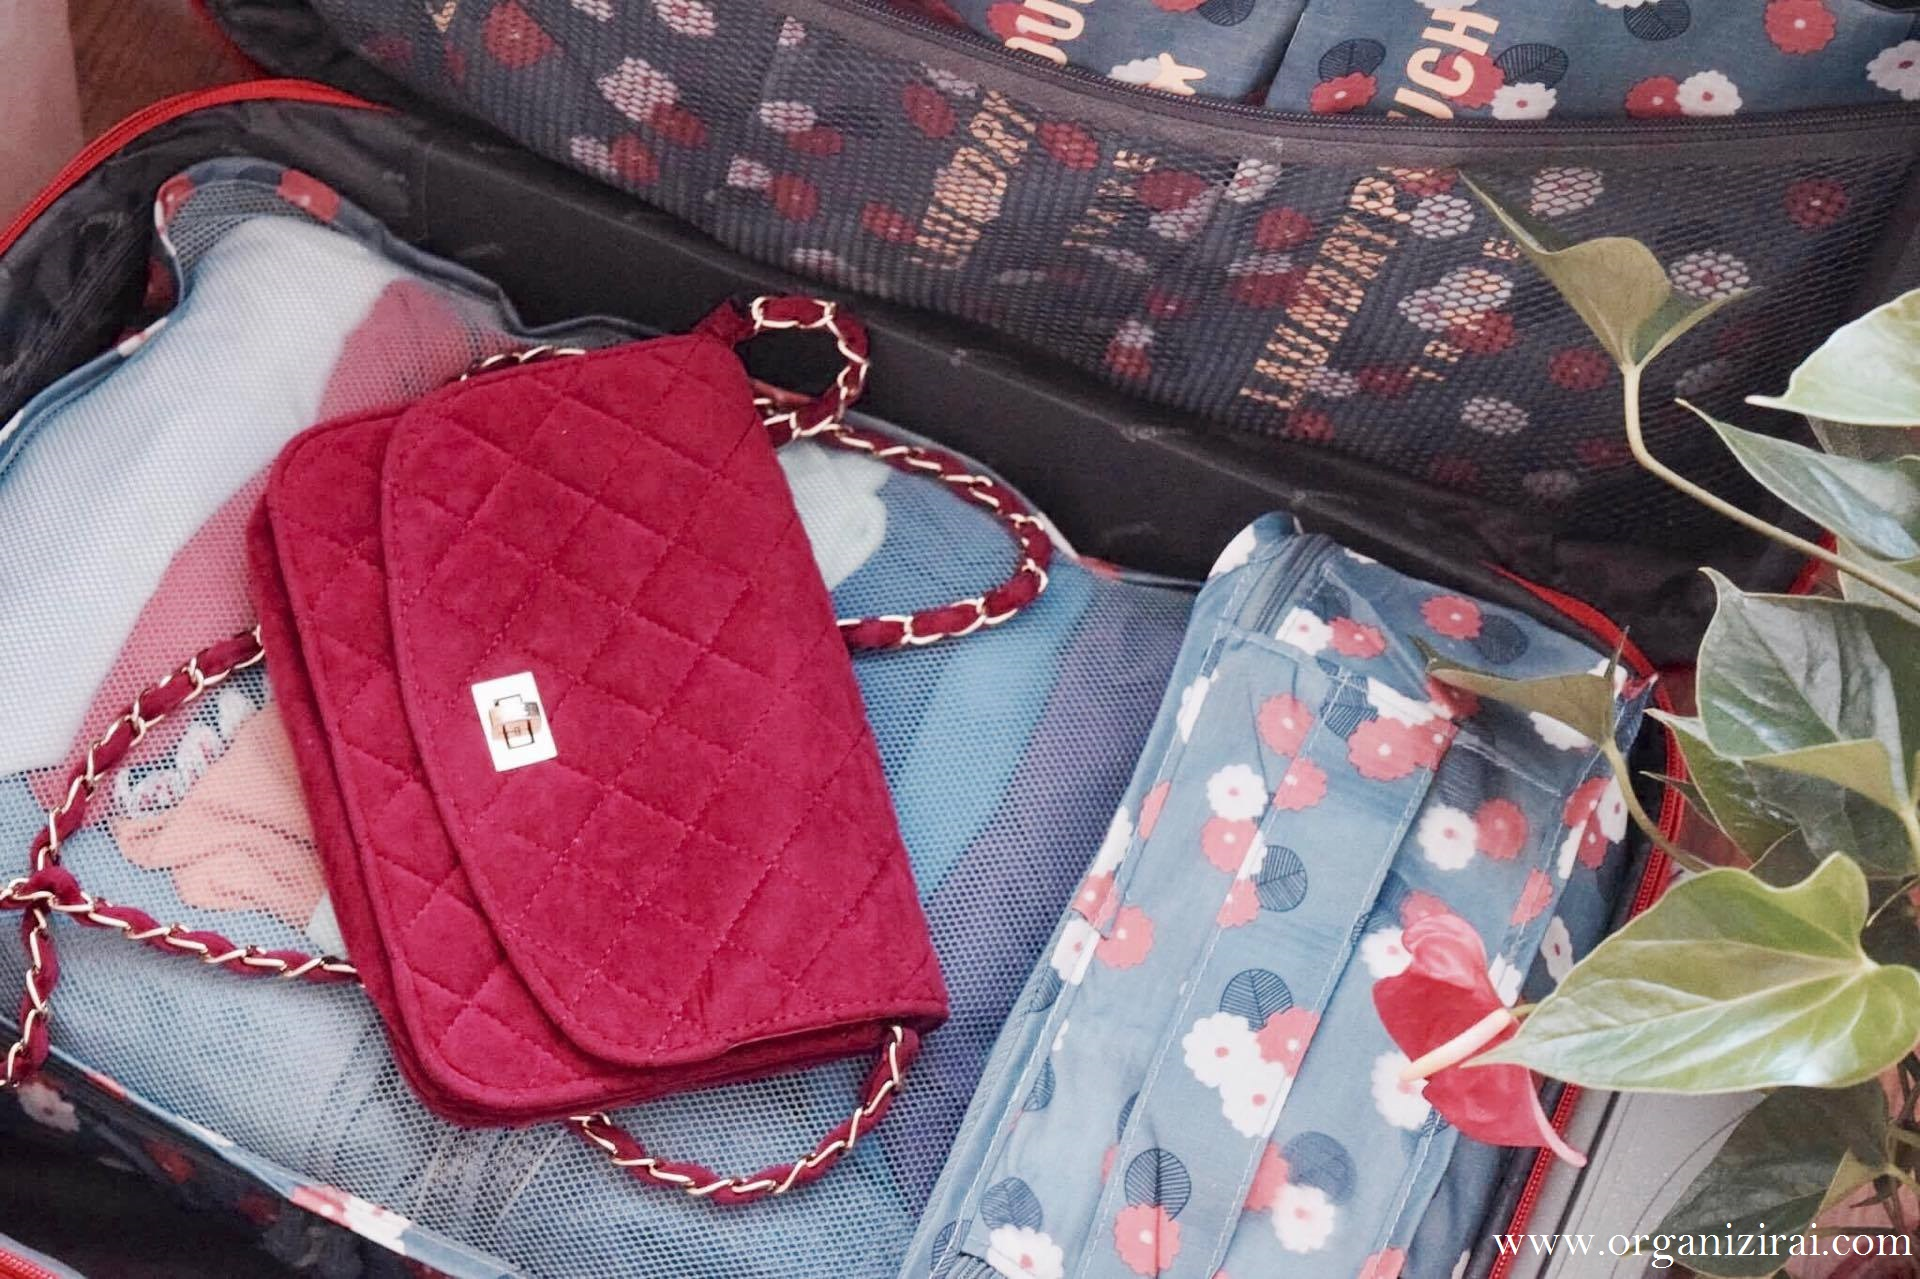 How-to-pack-a-carry-on-luggage-suitcase-packing-tip-organizirai.com-blog-best-bulgarian-bloggers